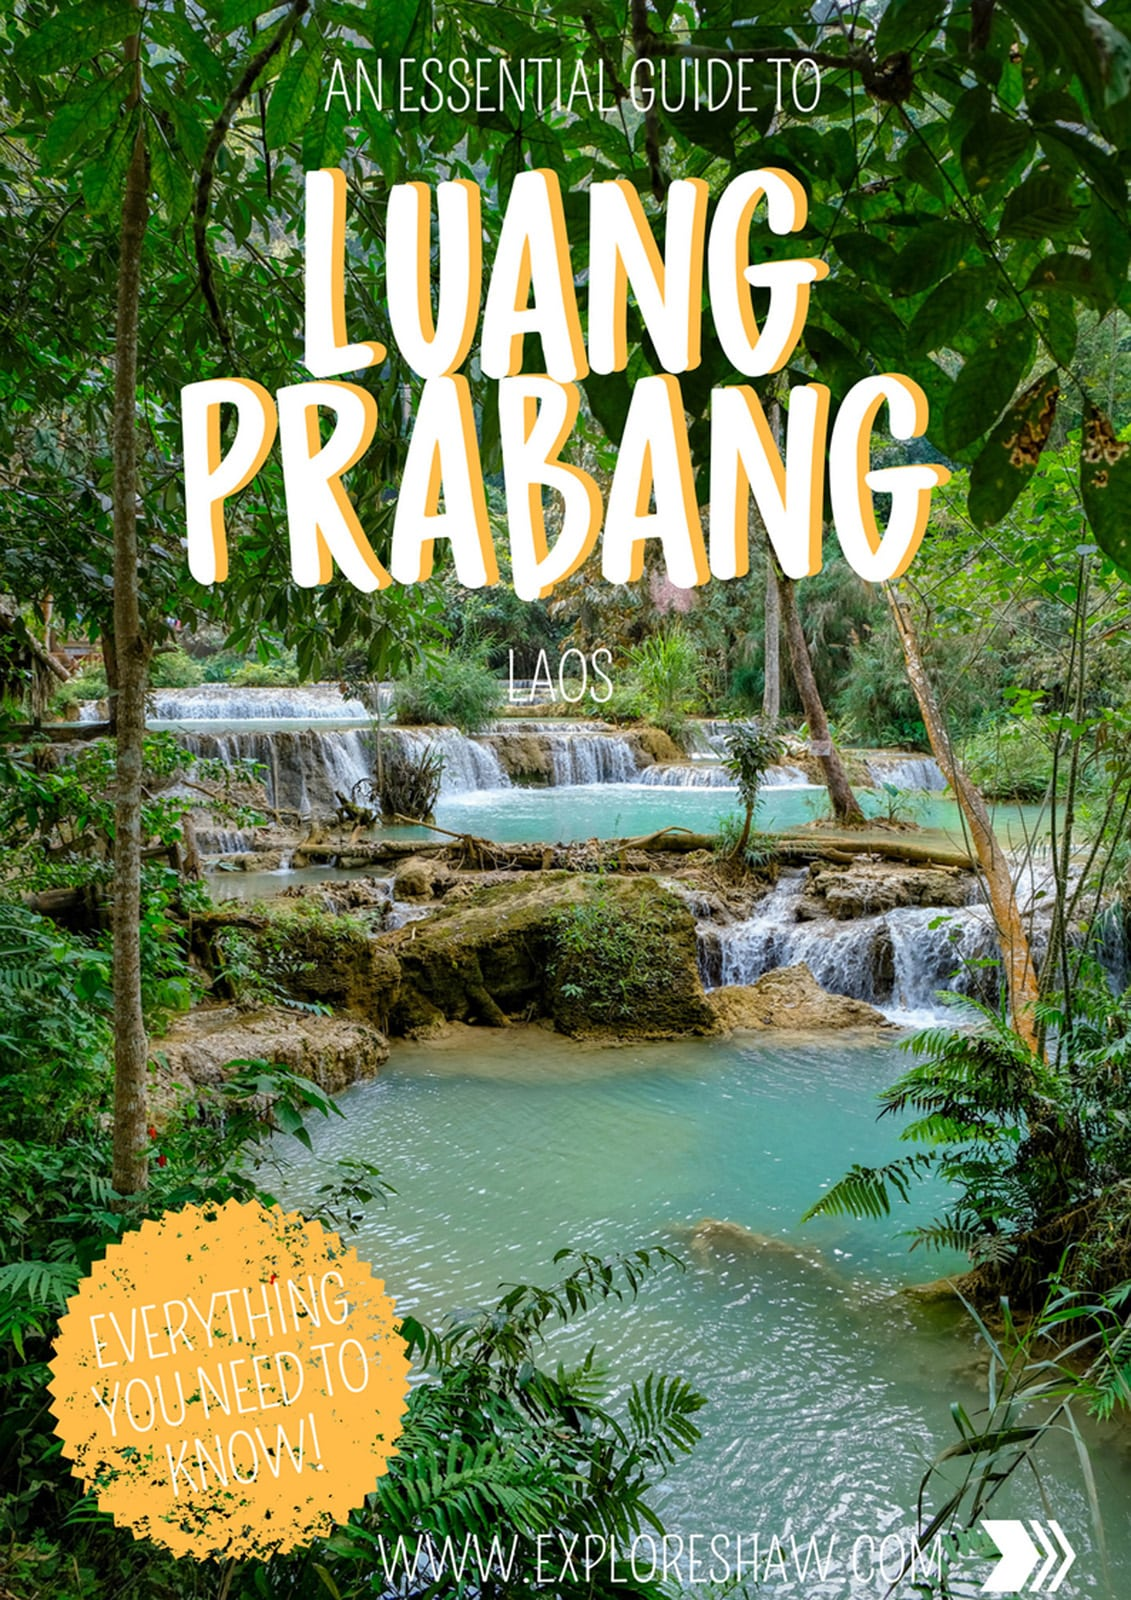 An Essential Guide To Luang Prabang 